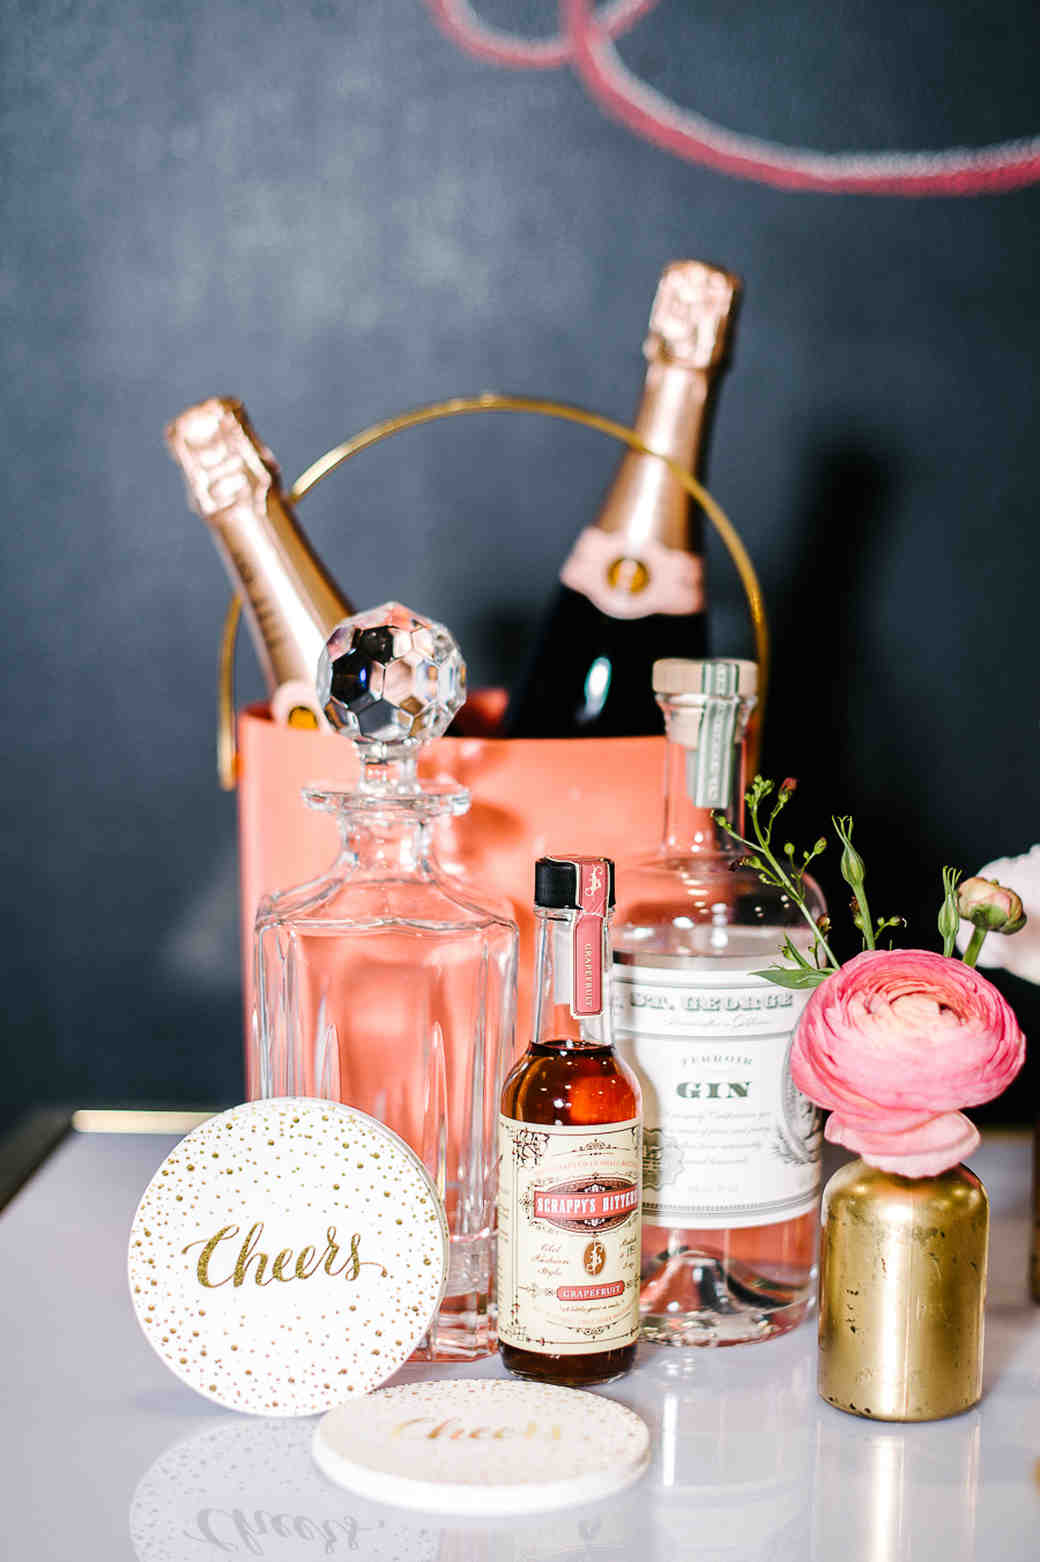 37 Bridal Shower Themes That Are Truly One-of-a-Kind